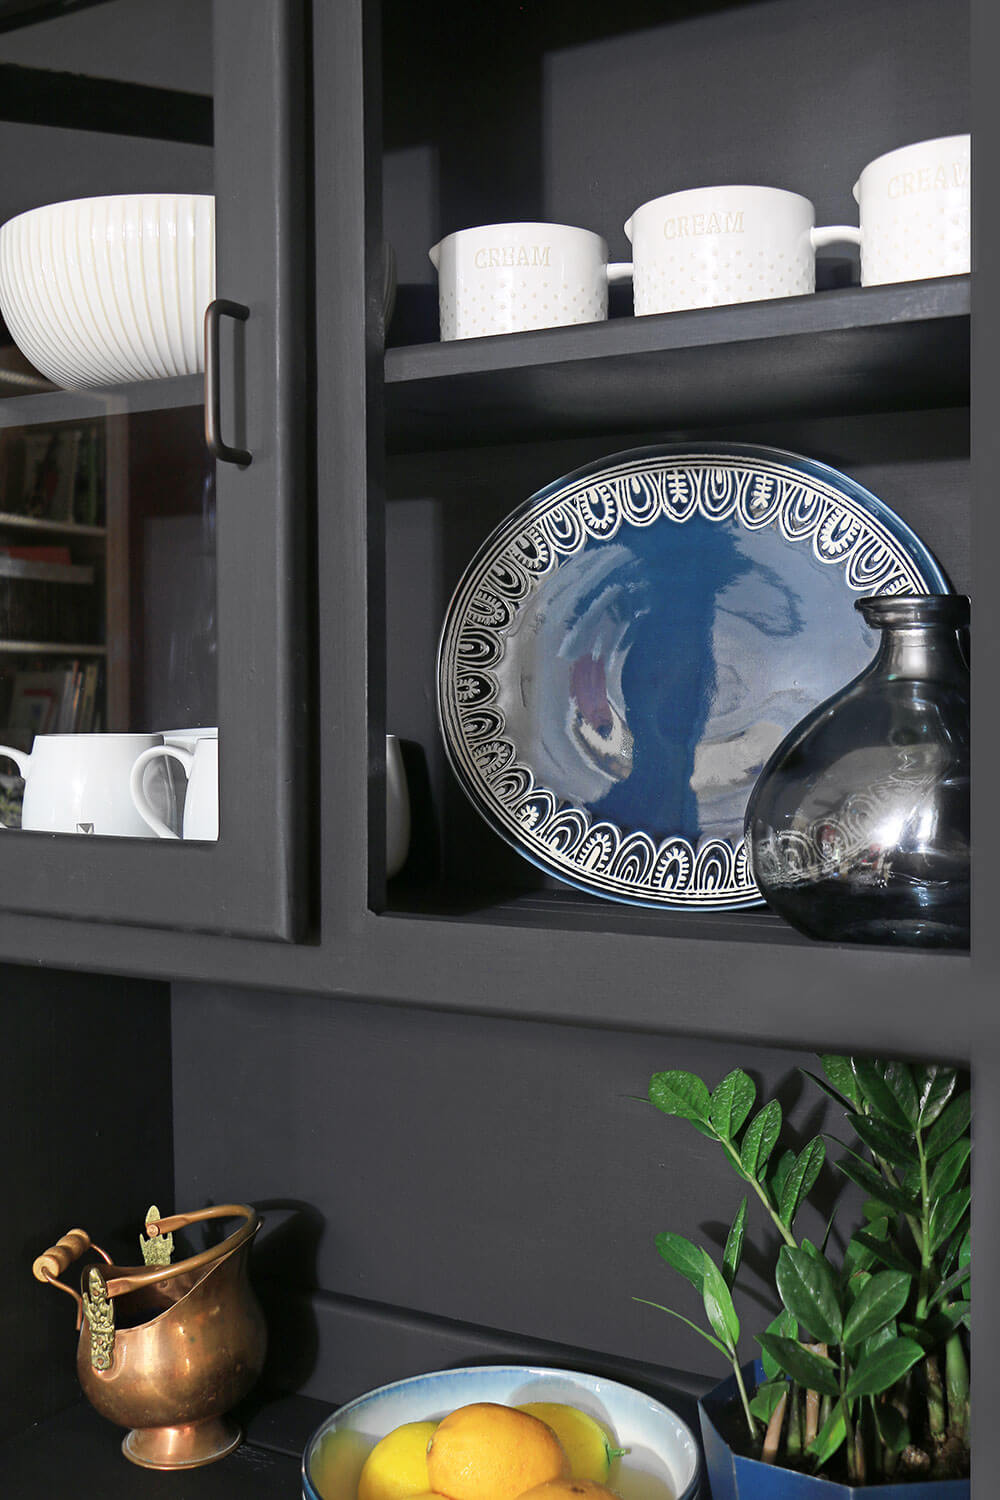 Oval Blue Dish in hutch